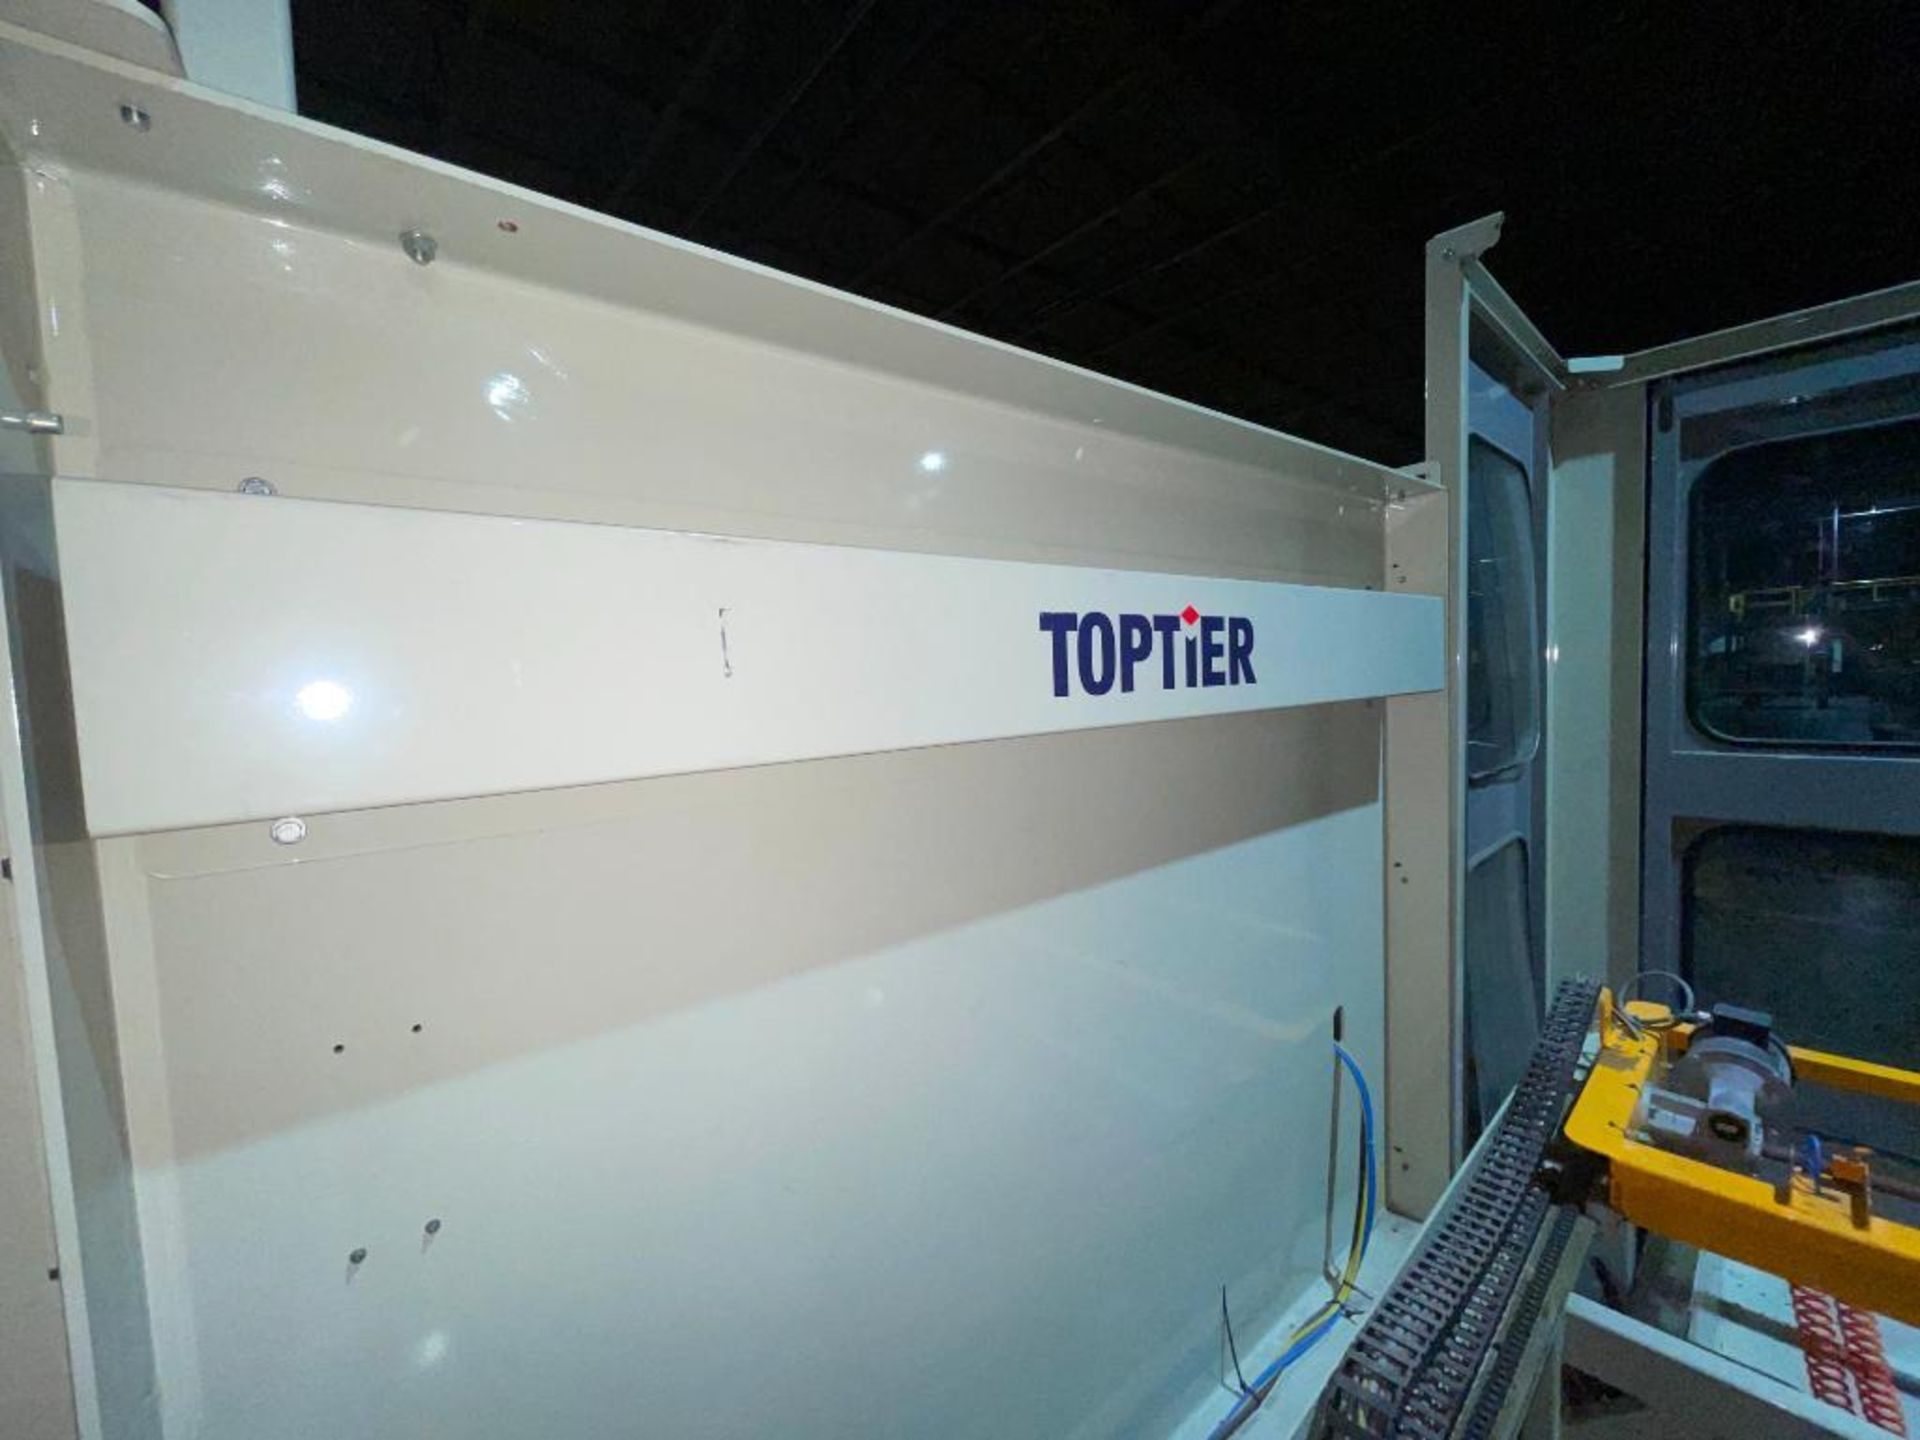 2013 TopTier downstacker, model DS with integrated TopTier pallet wrapper - Image 45 of 66